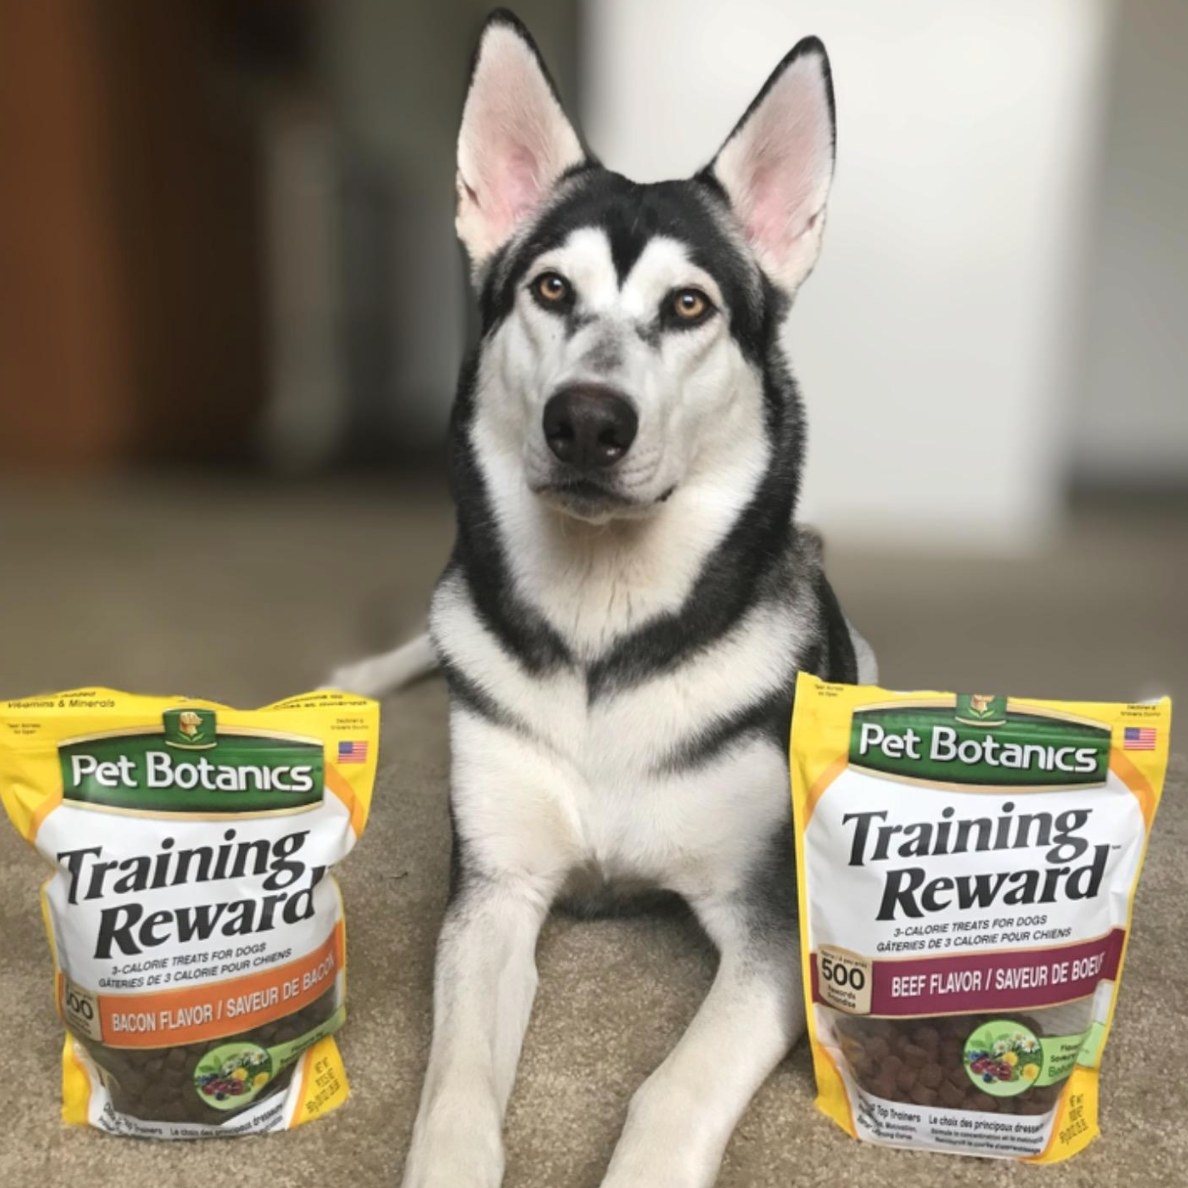 A reviewer's image of their Husky with the training reward treats